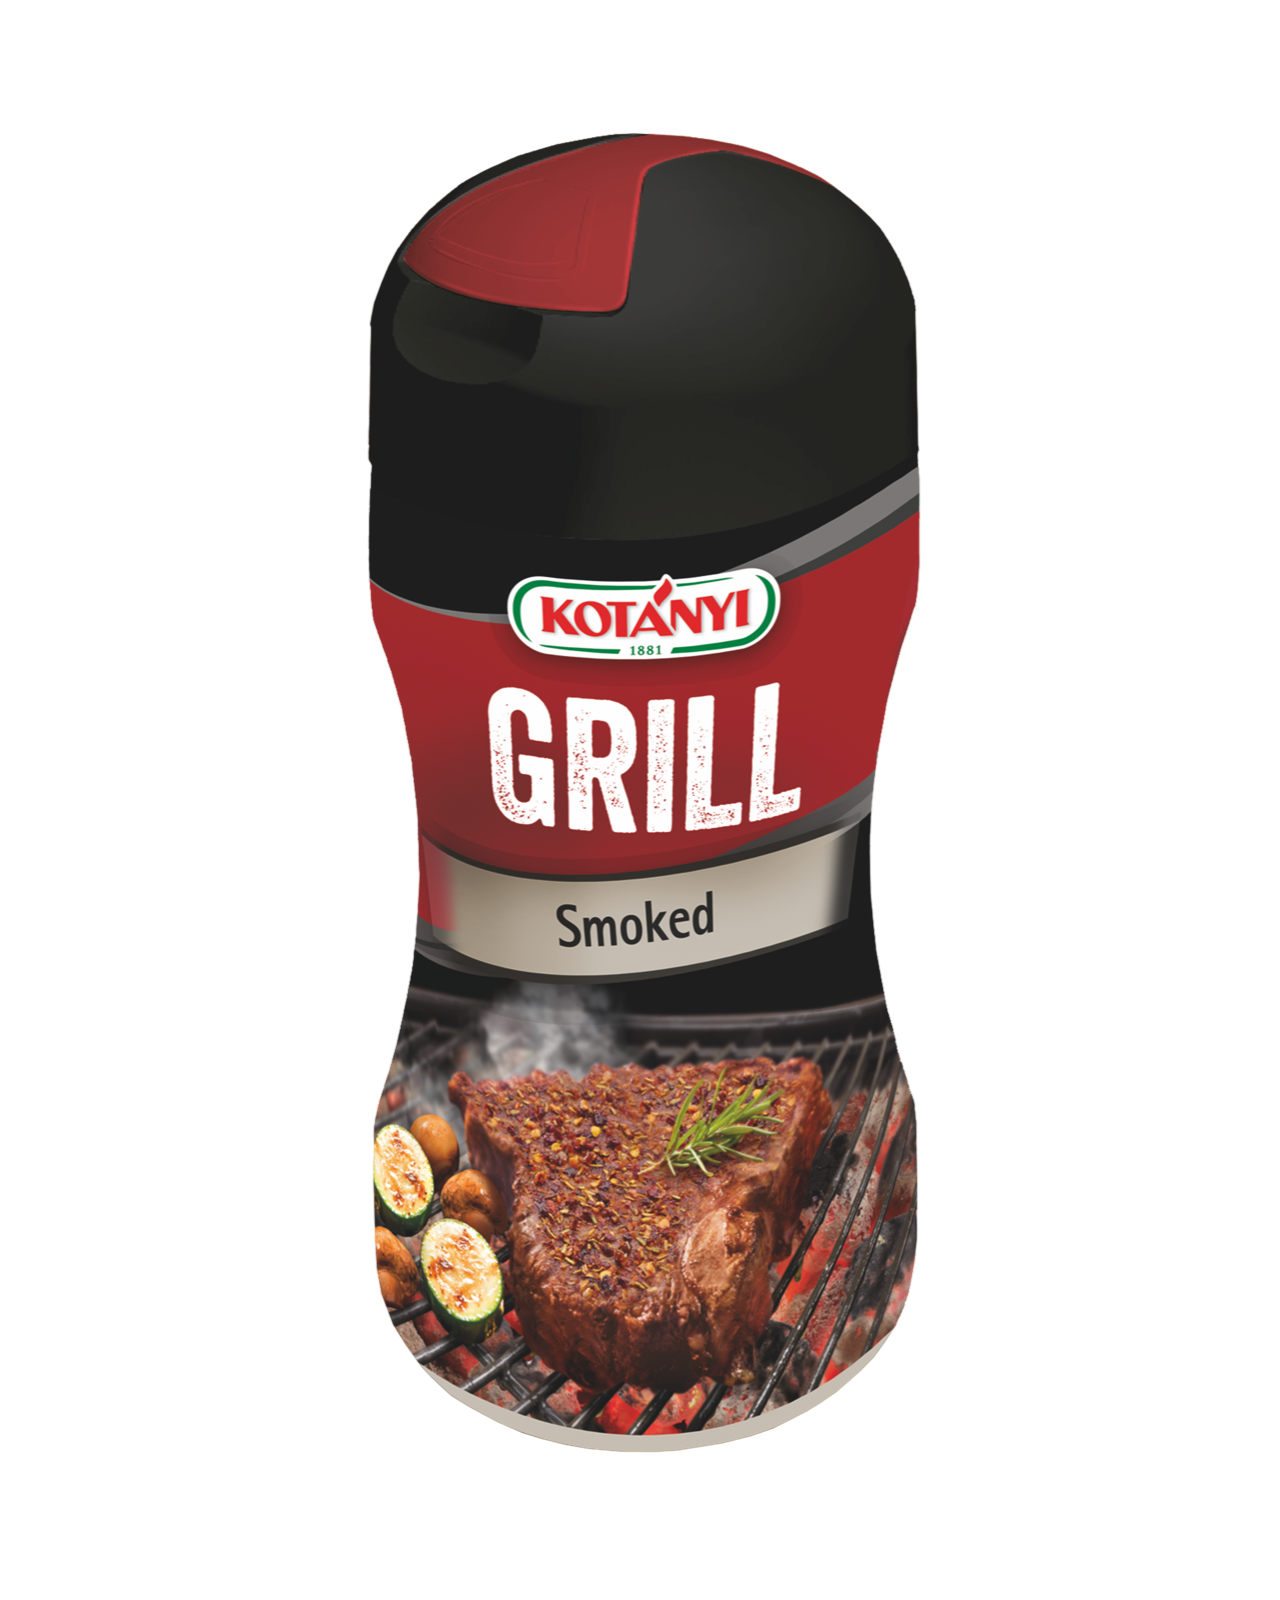 0684086 Kotanyi Grill Smoked Shaker Can